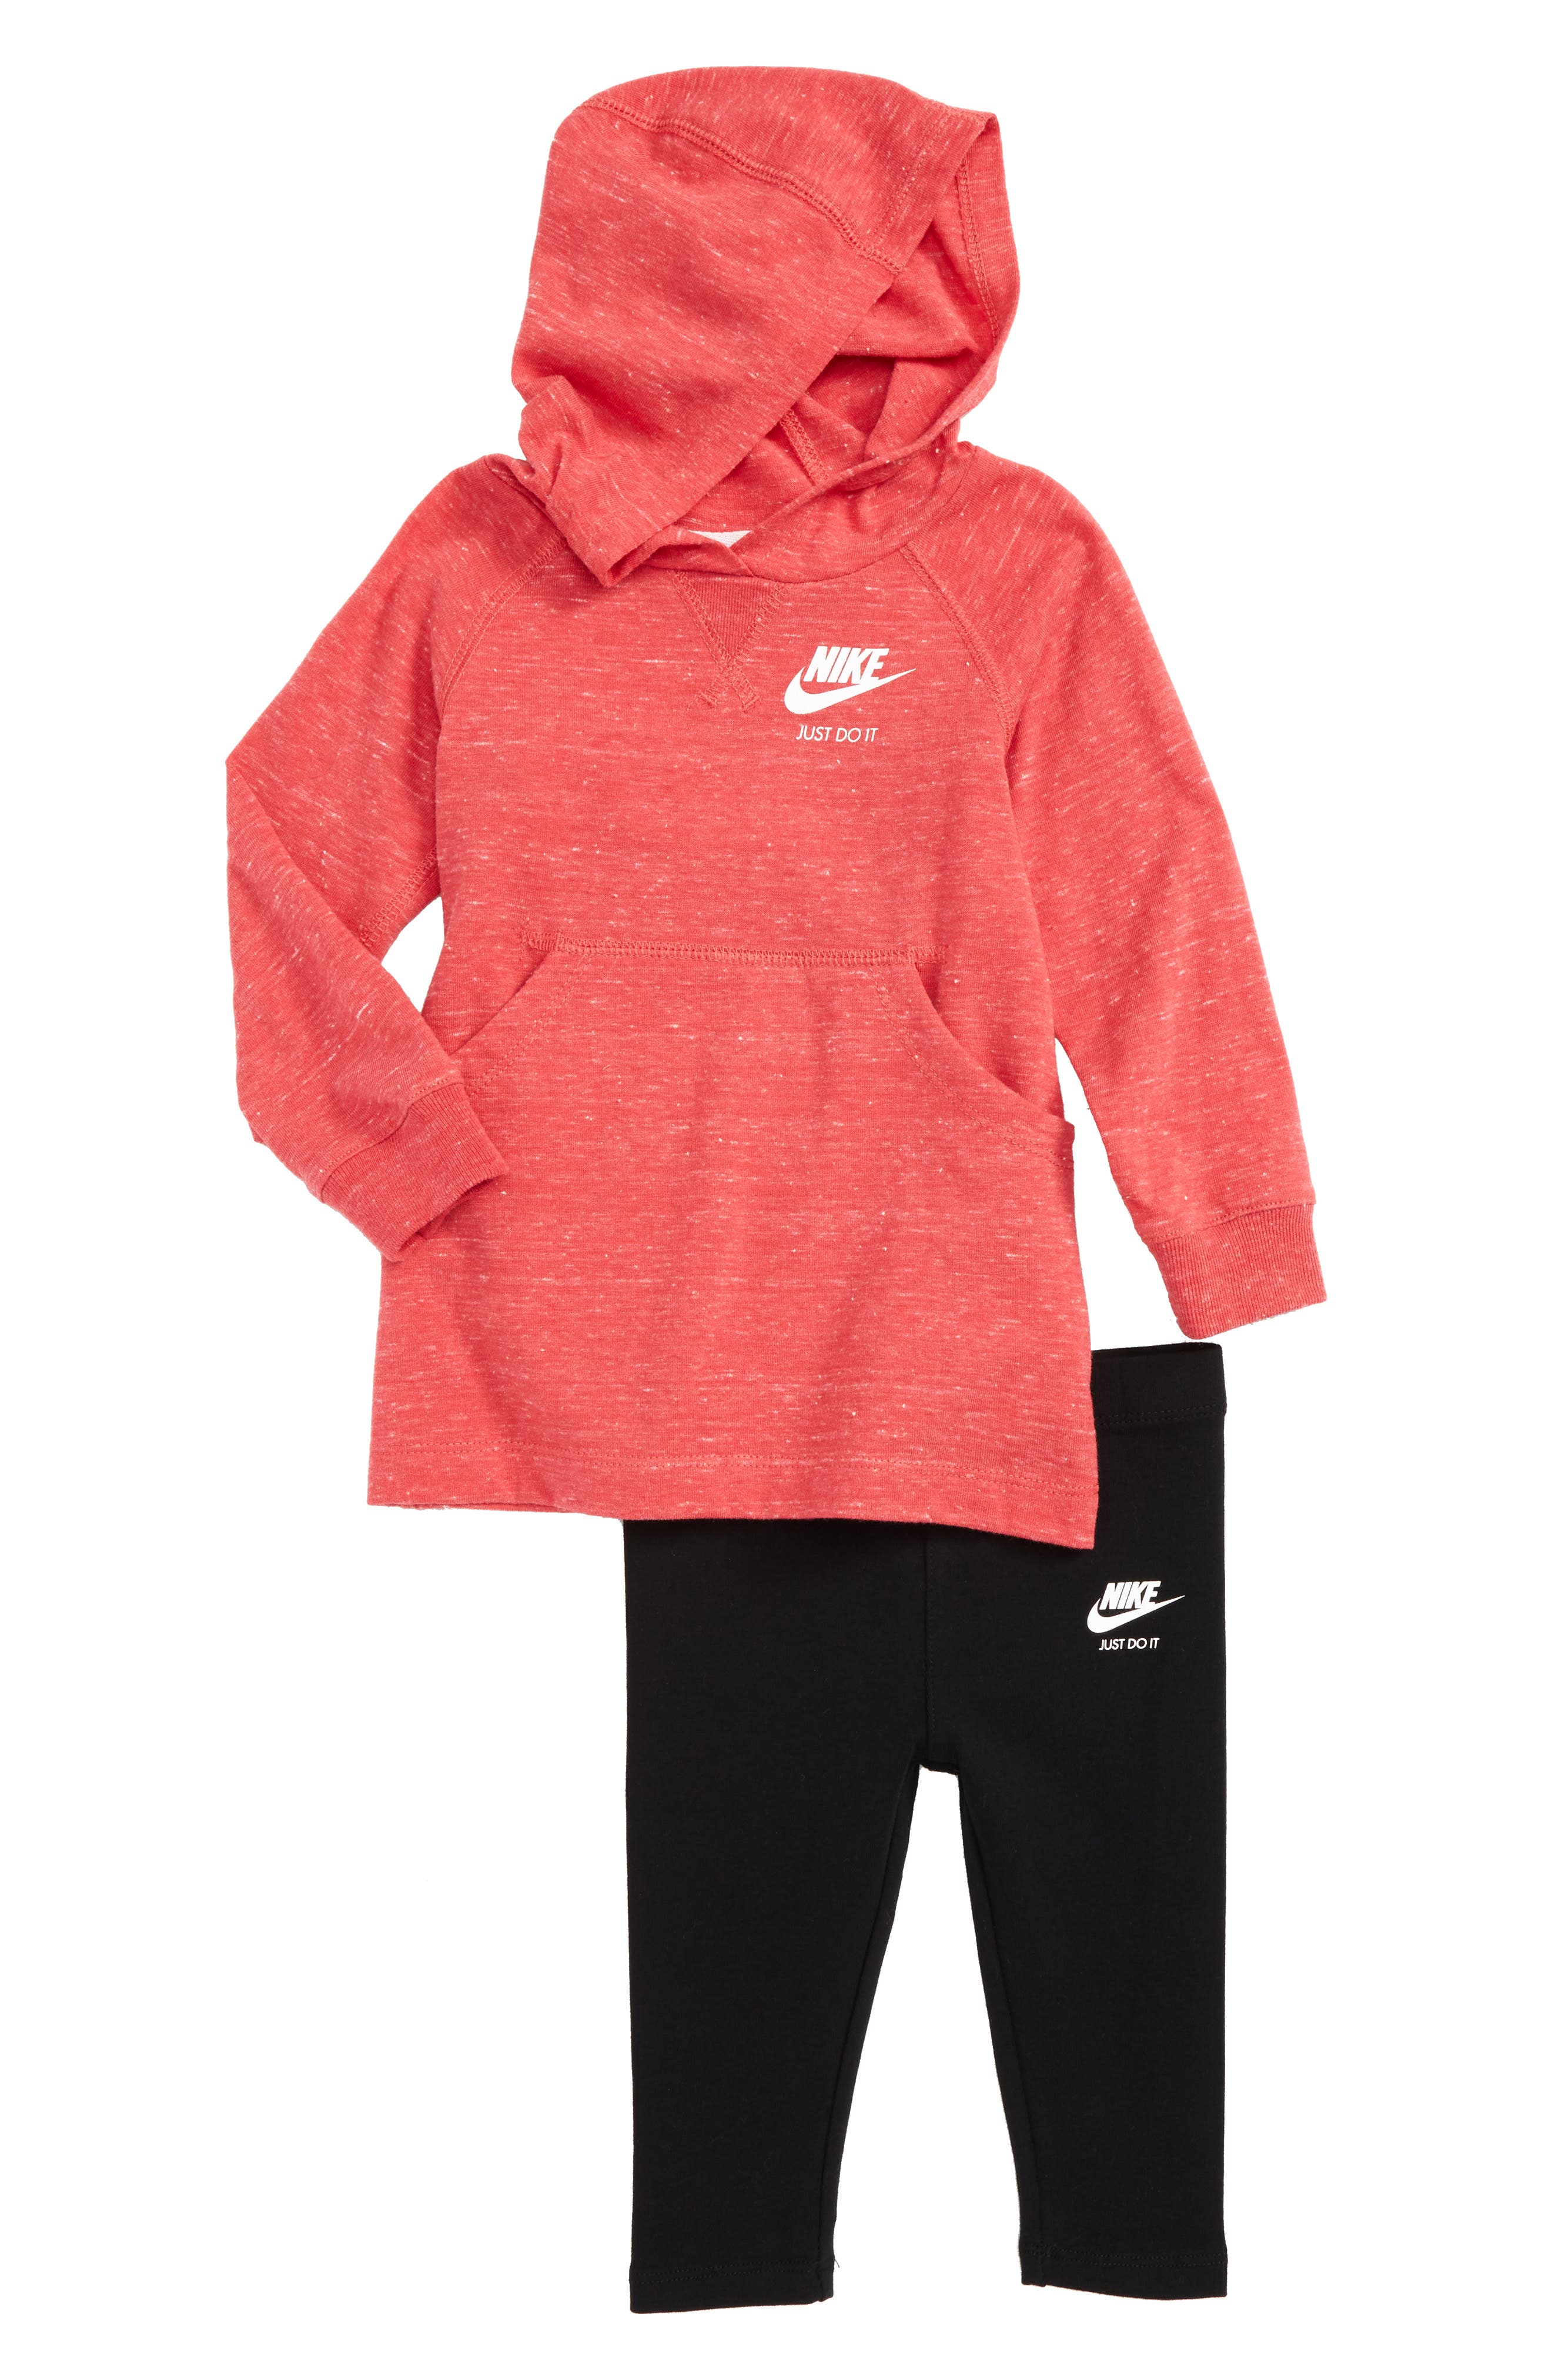 Main Image - Nike Hoodie & Leggings Set (Baby Girls)